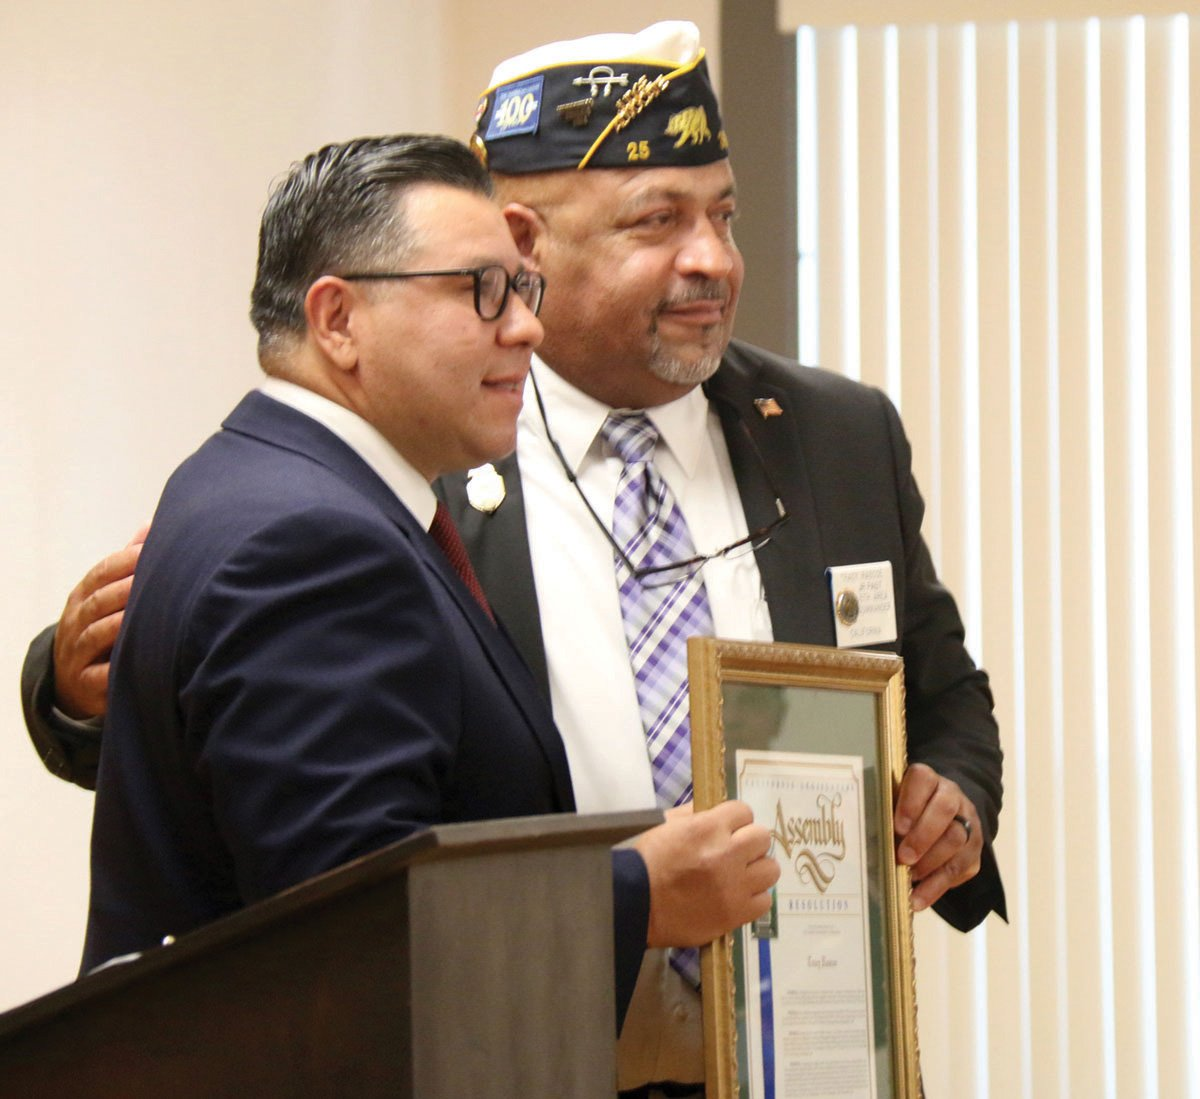 Armed Forces Advocate Tracy Rascoe Honored as Veteran of the Year